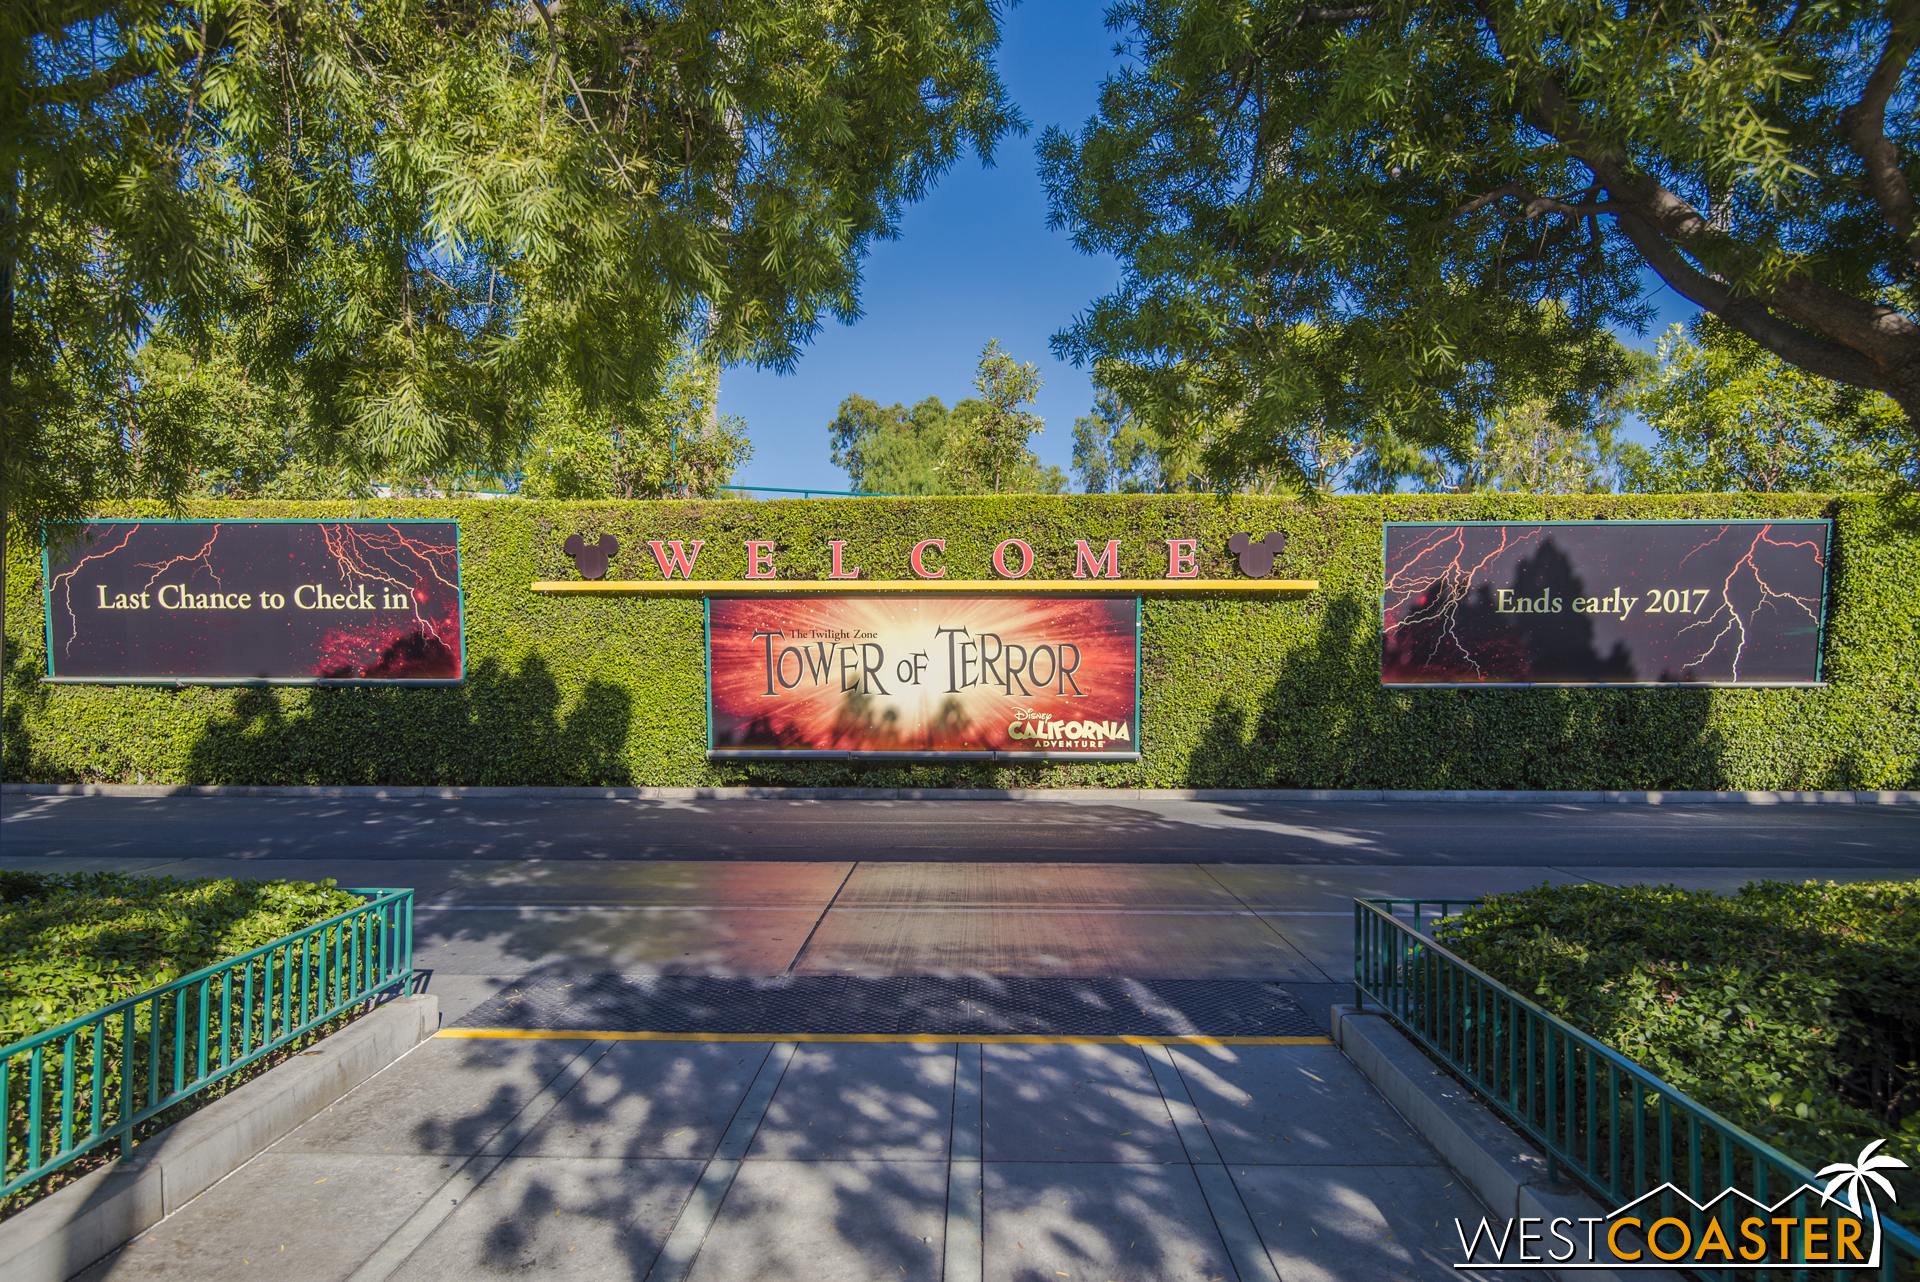 Here's the new Mickey and Friends Parking tram loading area poster.